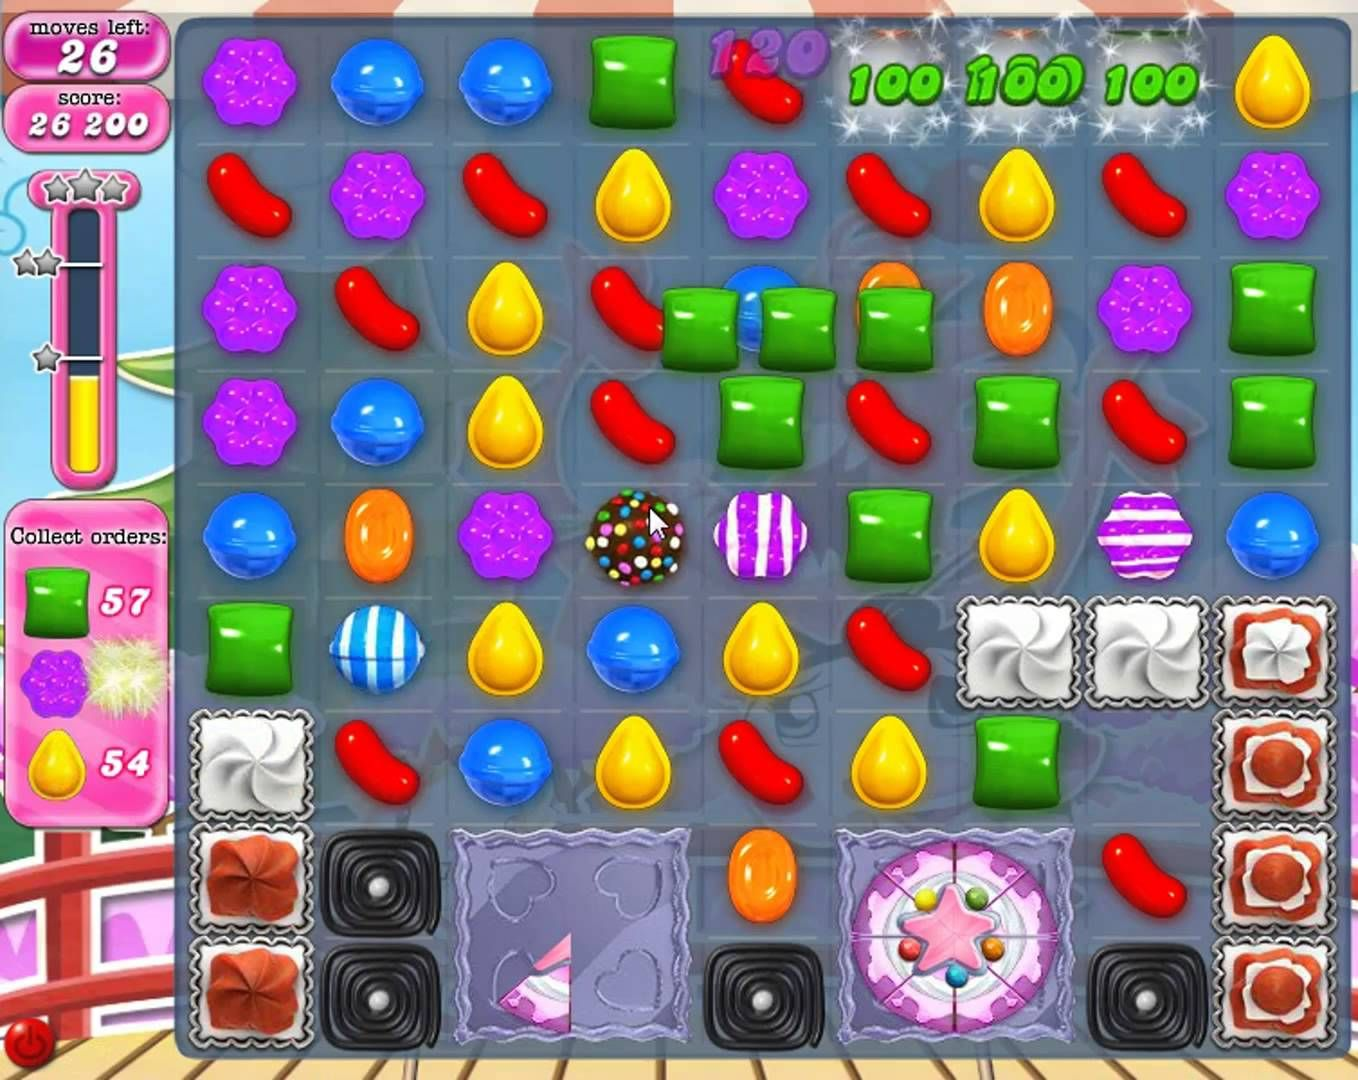 Enter into the magical world of candies. Match and switch